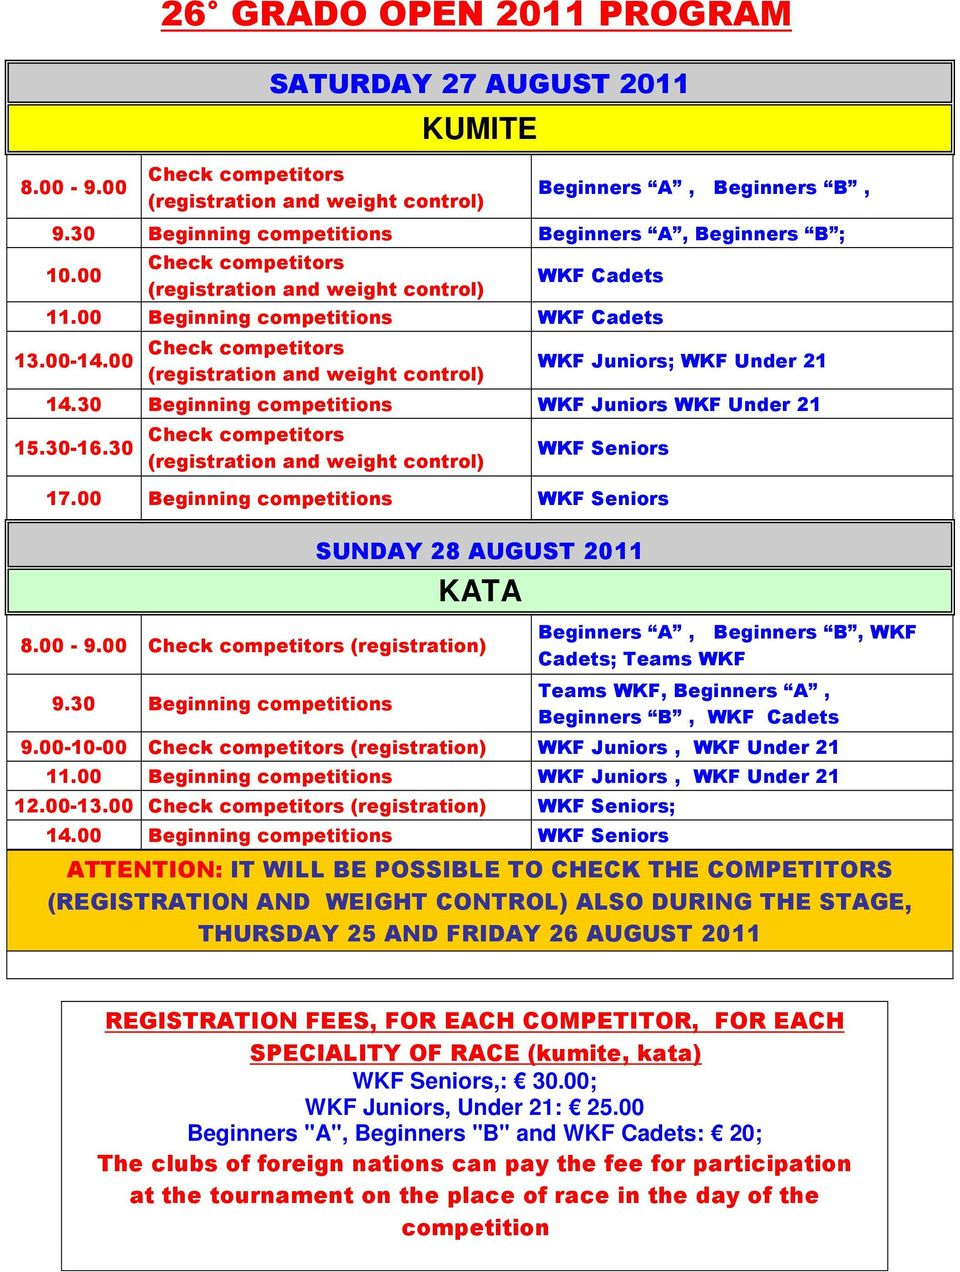 00 Beginning competitions WKF Seniors SUNDAY 28 AUGUST 2011 KATA 8.00-9.00 (registration) 9.